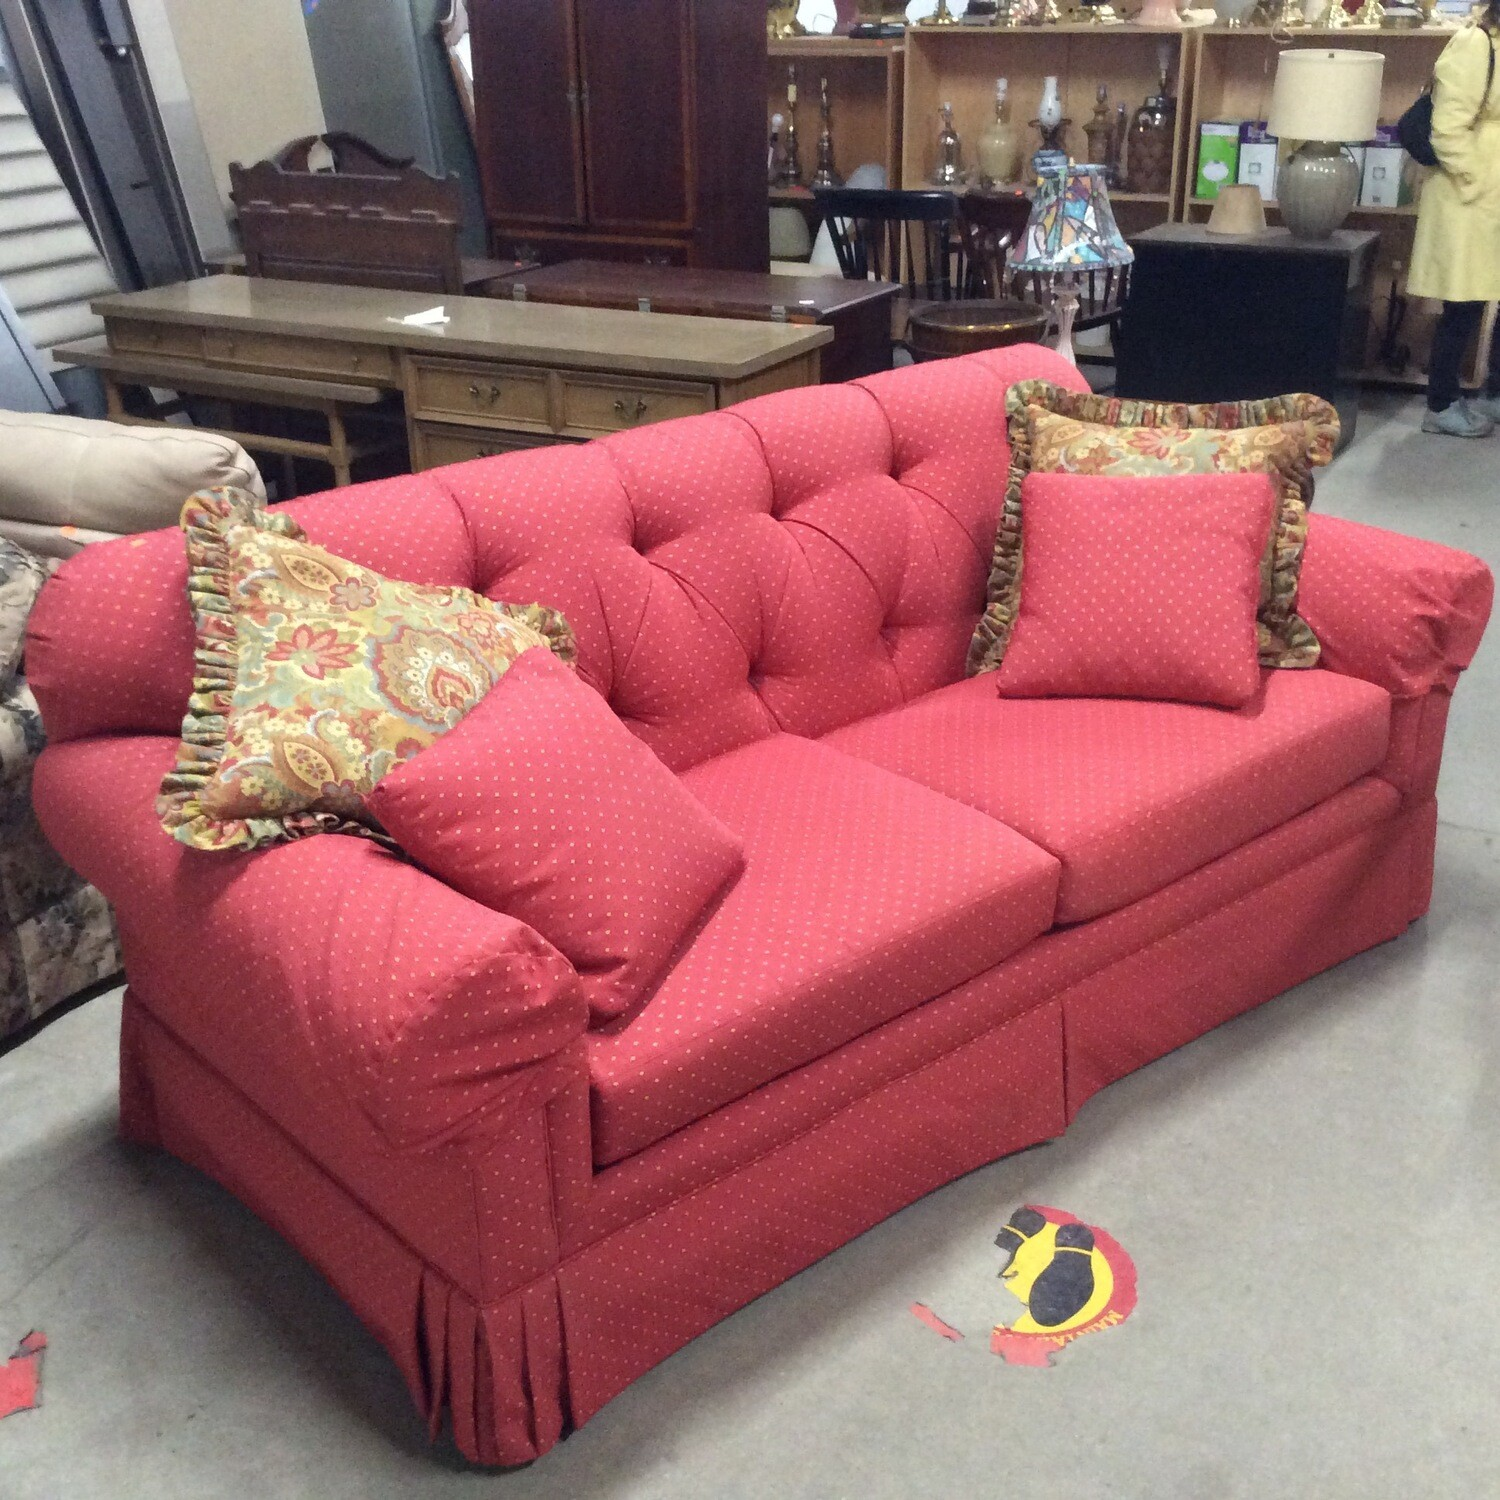 Full-Size Couch from Calico Corners Furniture